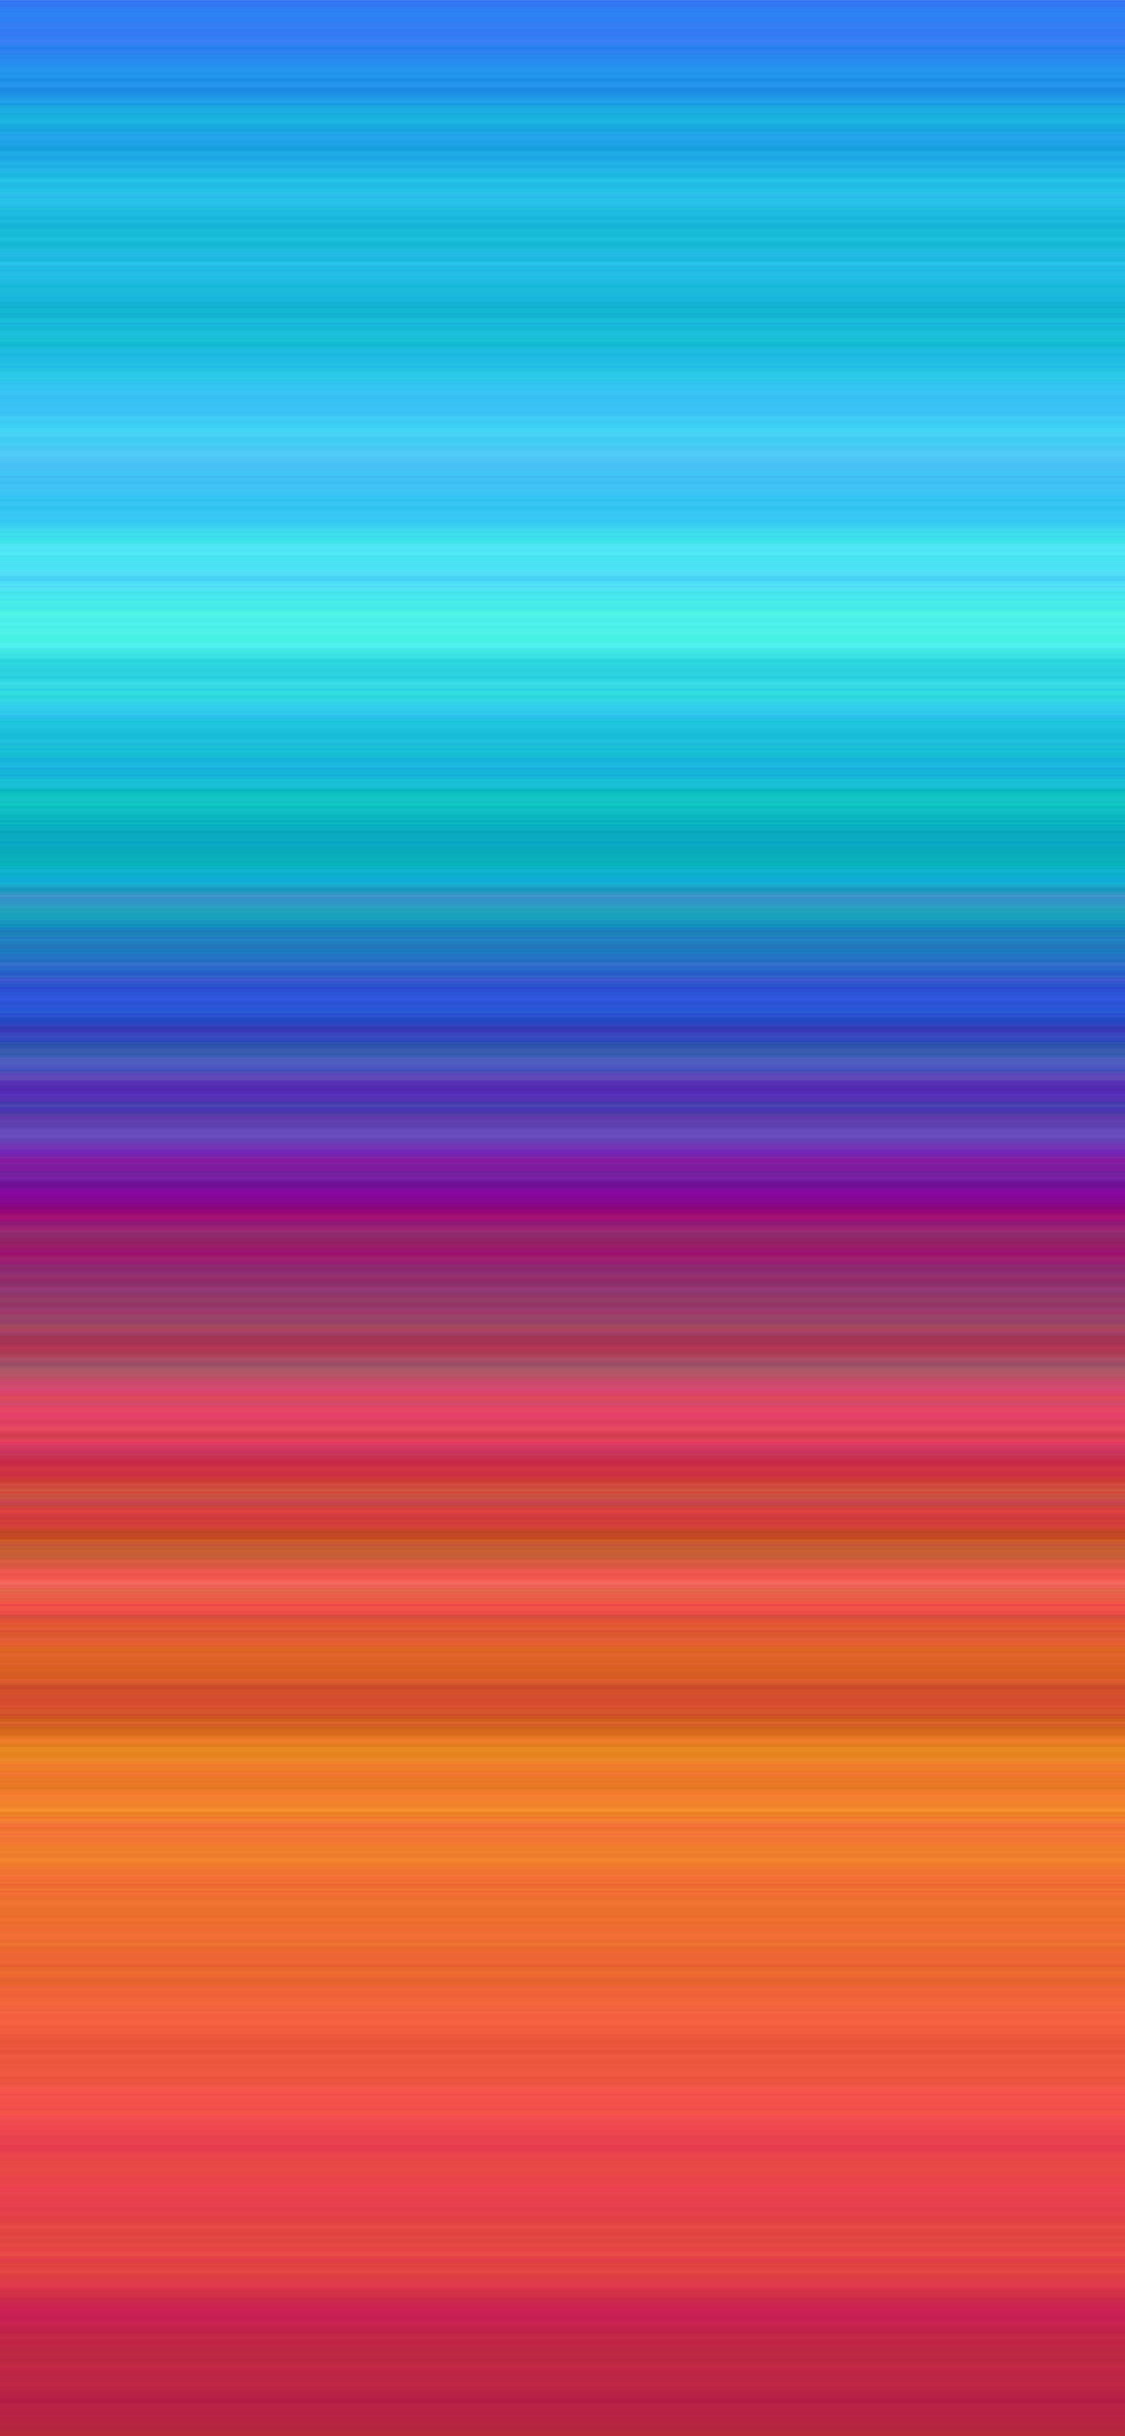 iPhonexpapers.com-Apple-iPhone-wallpaper-vs04-rainbow-line-abstract-pattern-blue-red